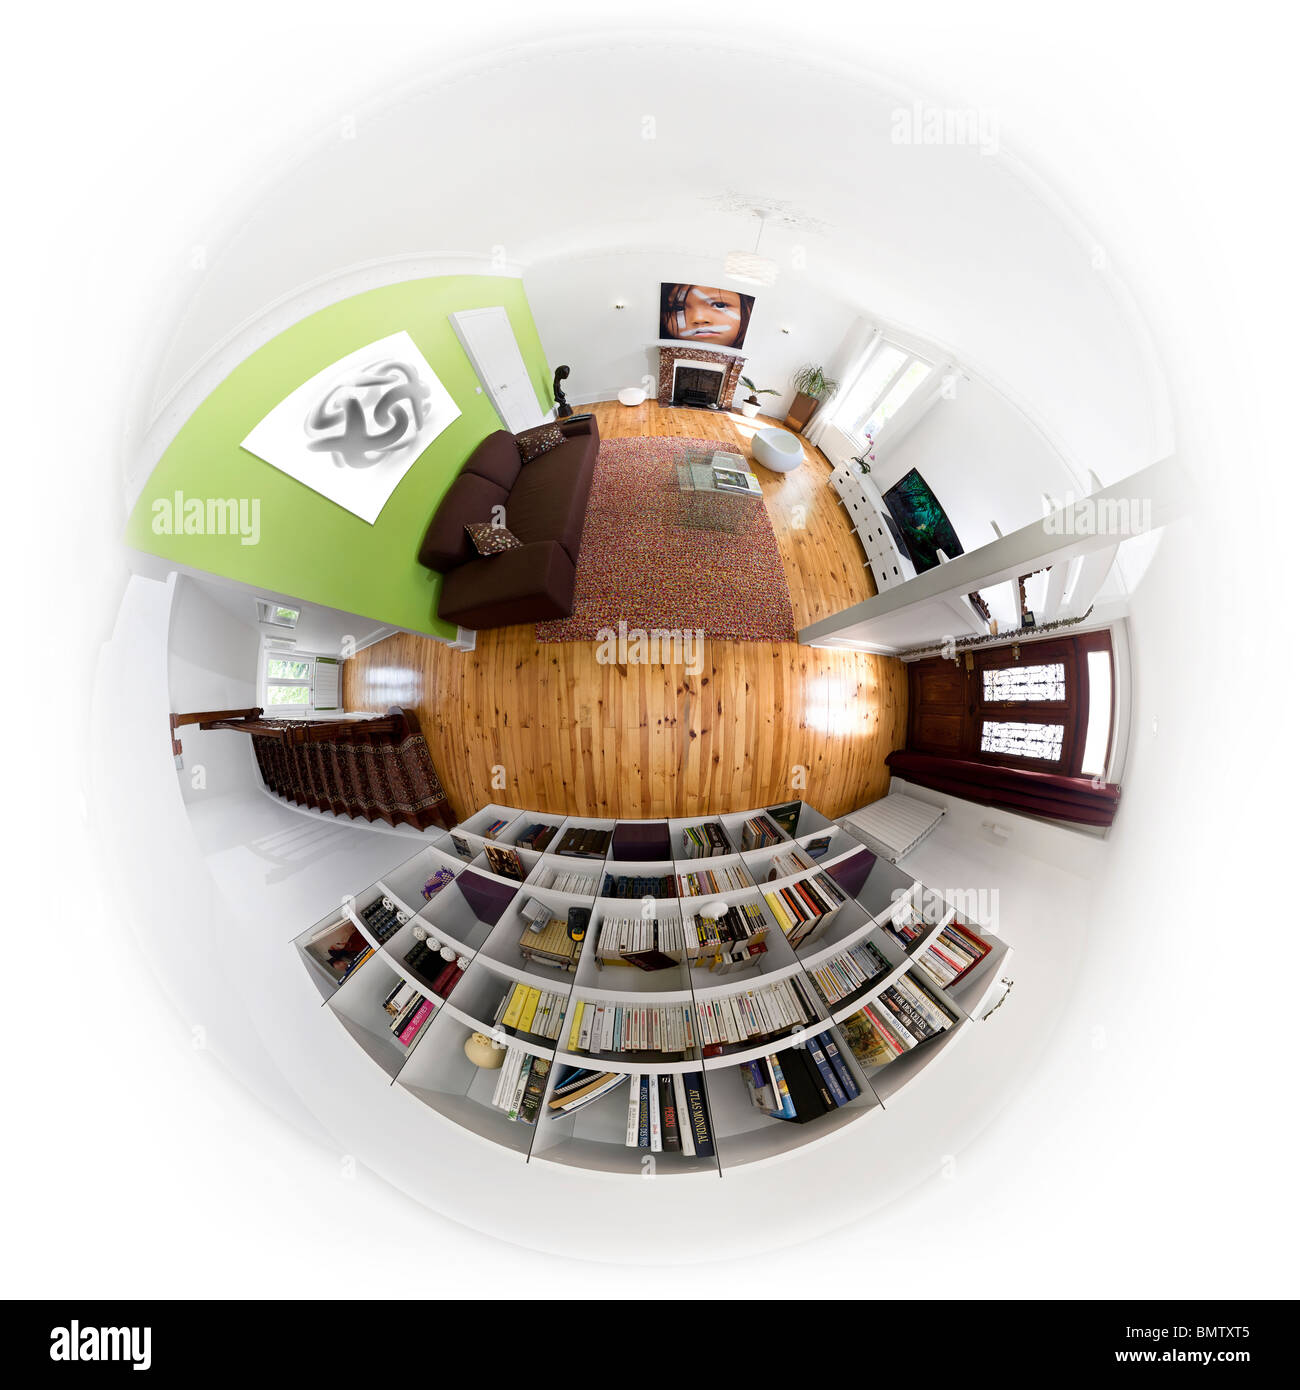 fisheye ultra wide angle lens image of a modern apartment in